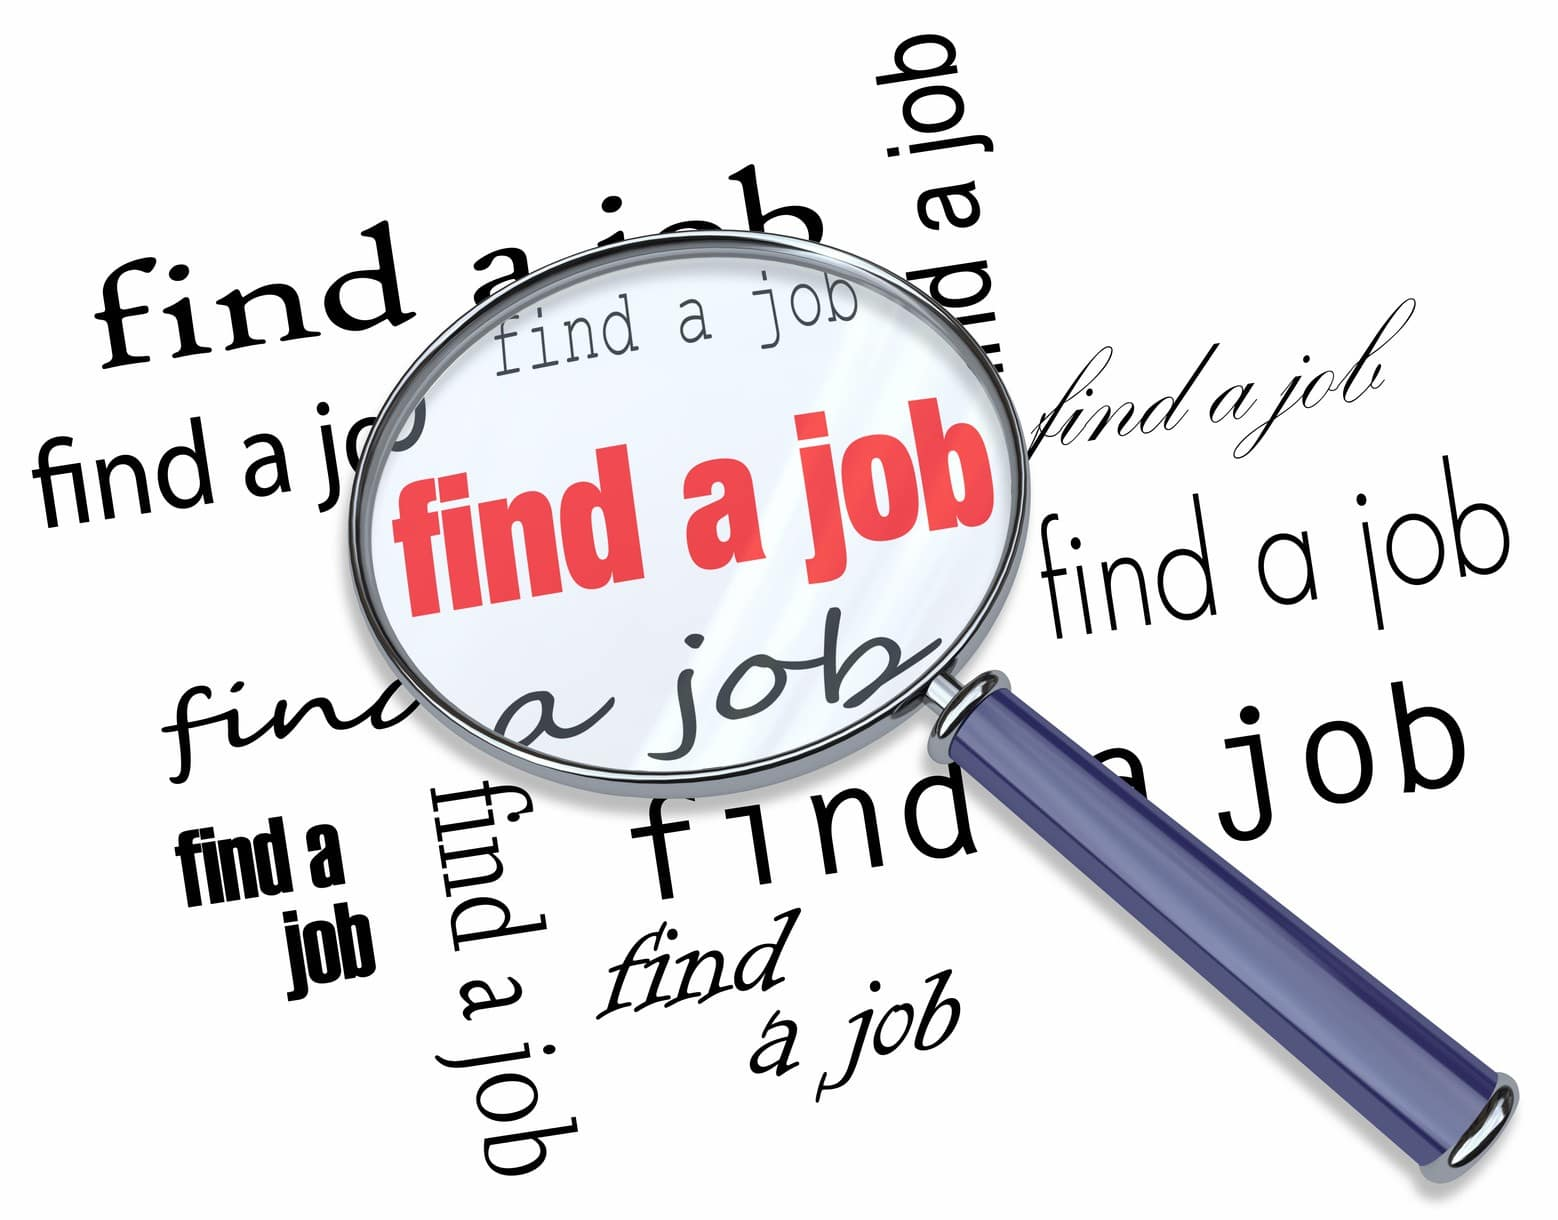 5 tips how to get a job in IT